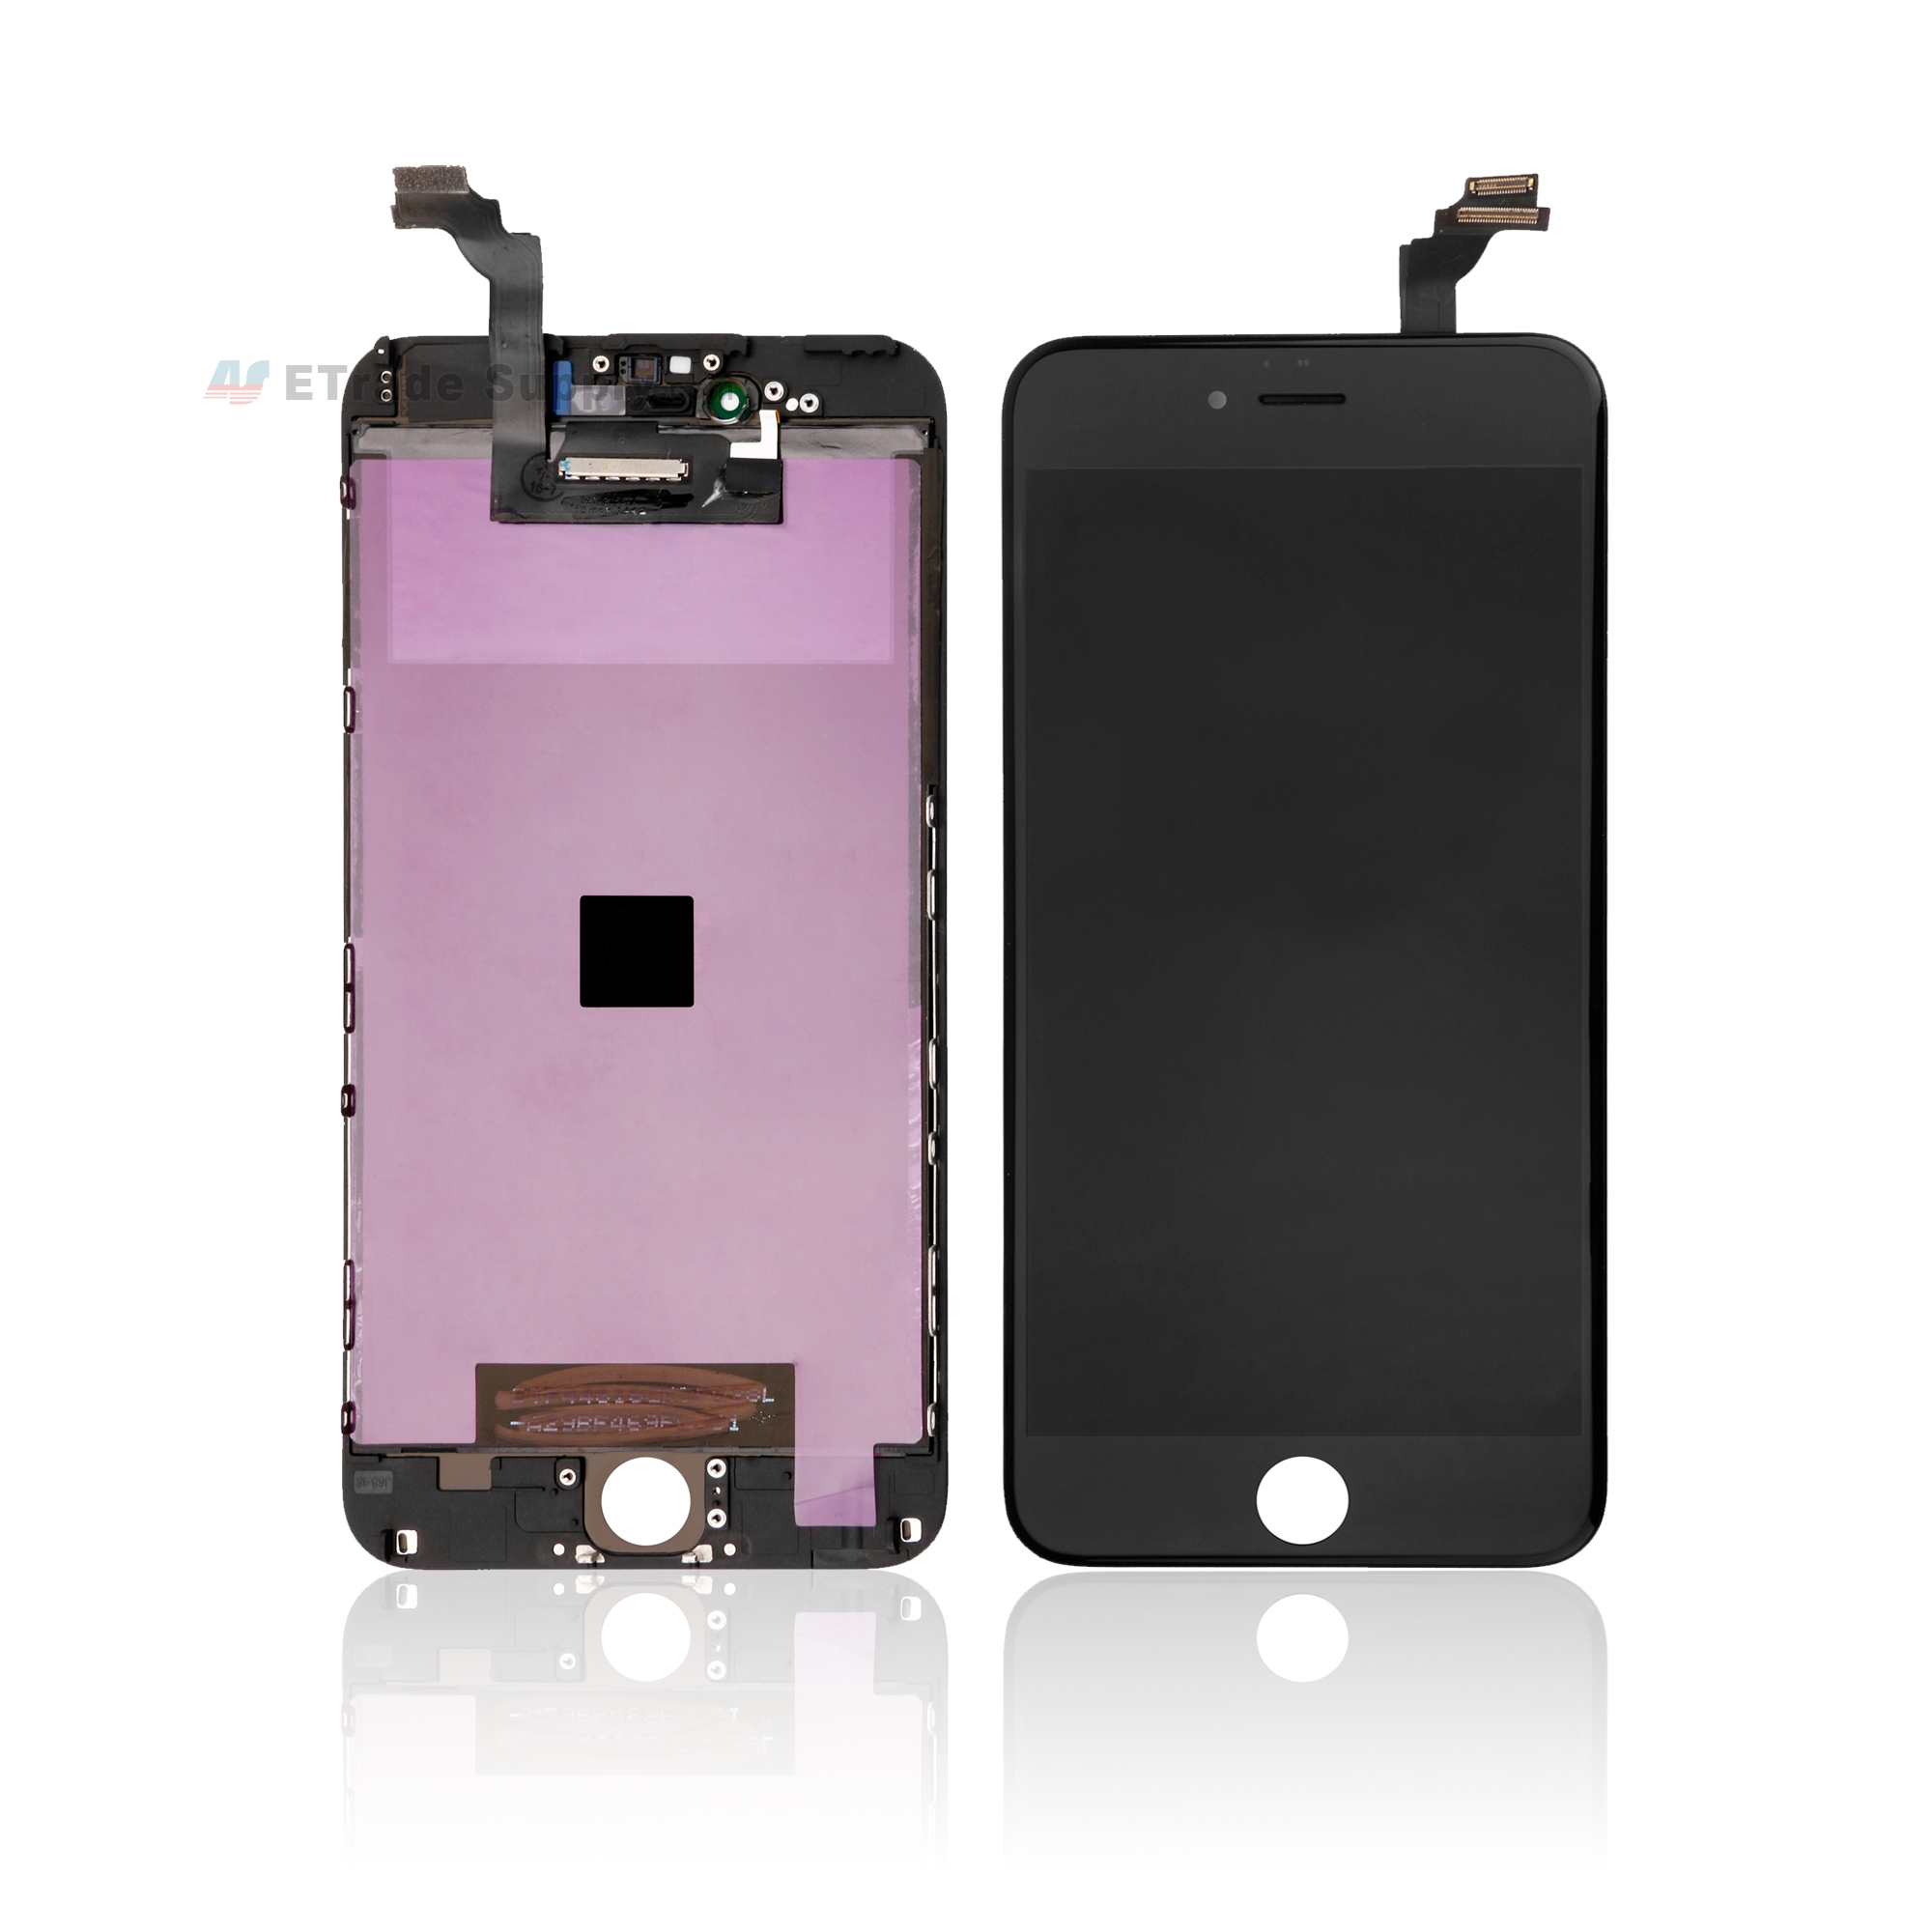 iphone 6 plus screen replacement cost how much does it cost to repair an iphone 6 plus 19335